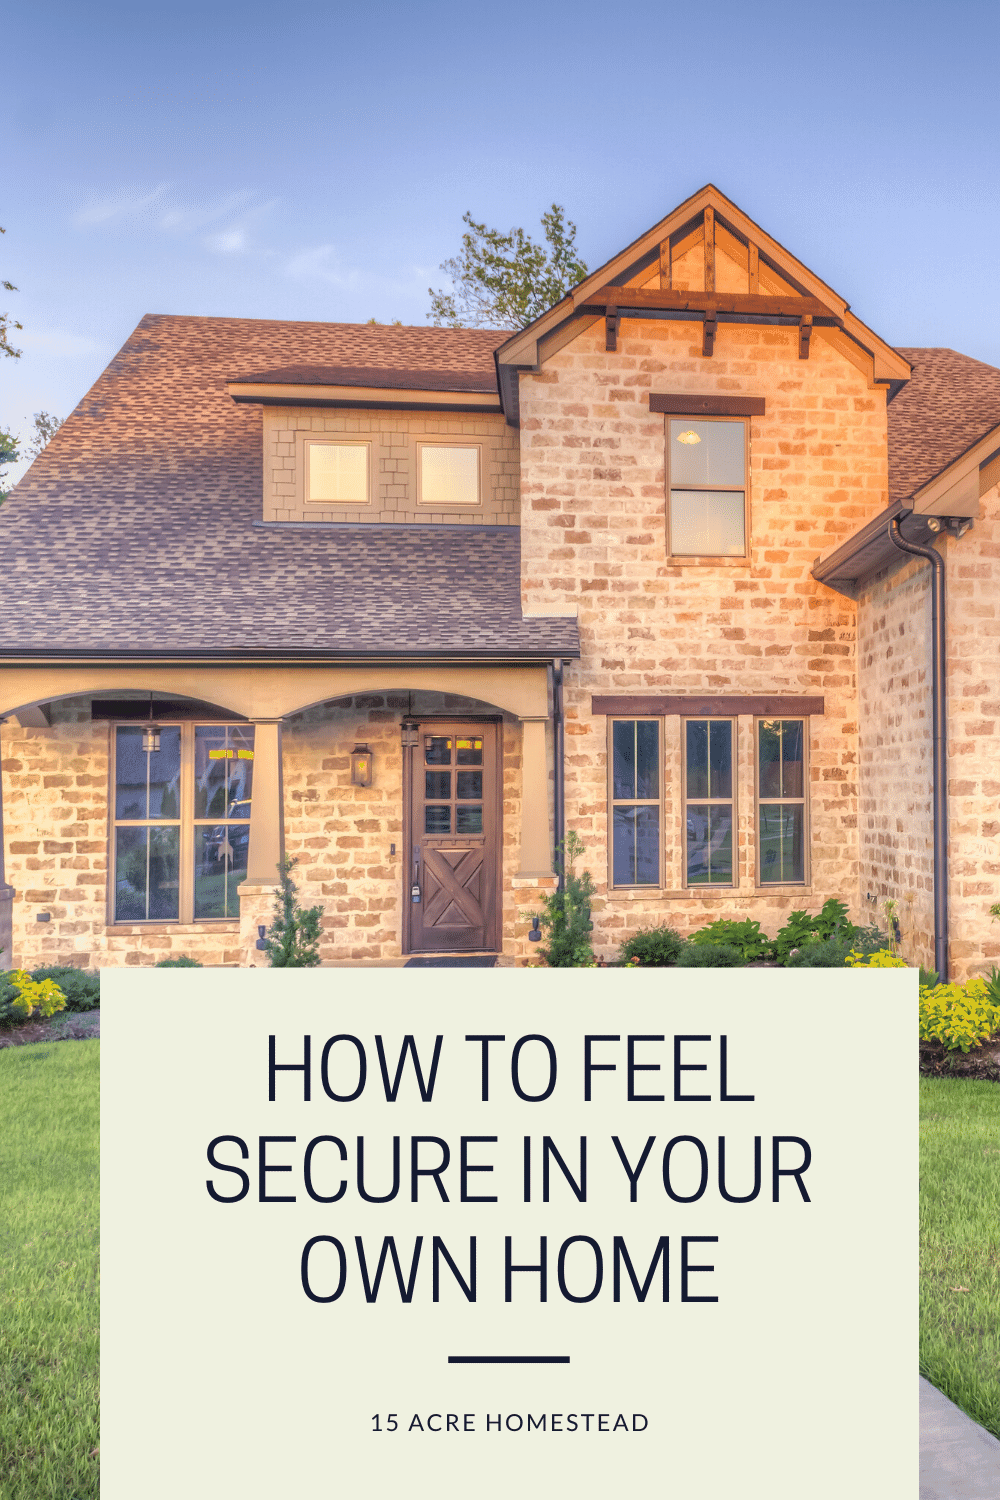 Feeling secure in your own home is very important. These tips can help you to do so.